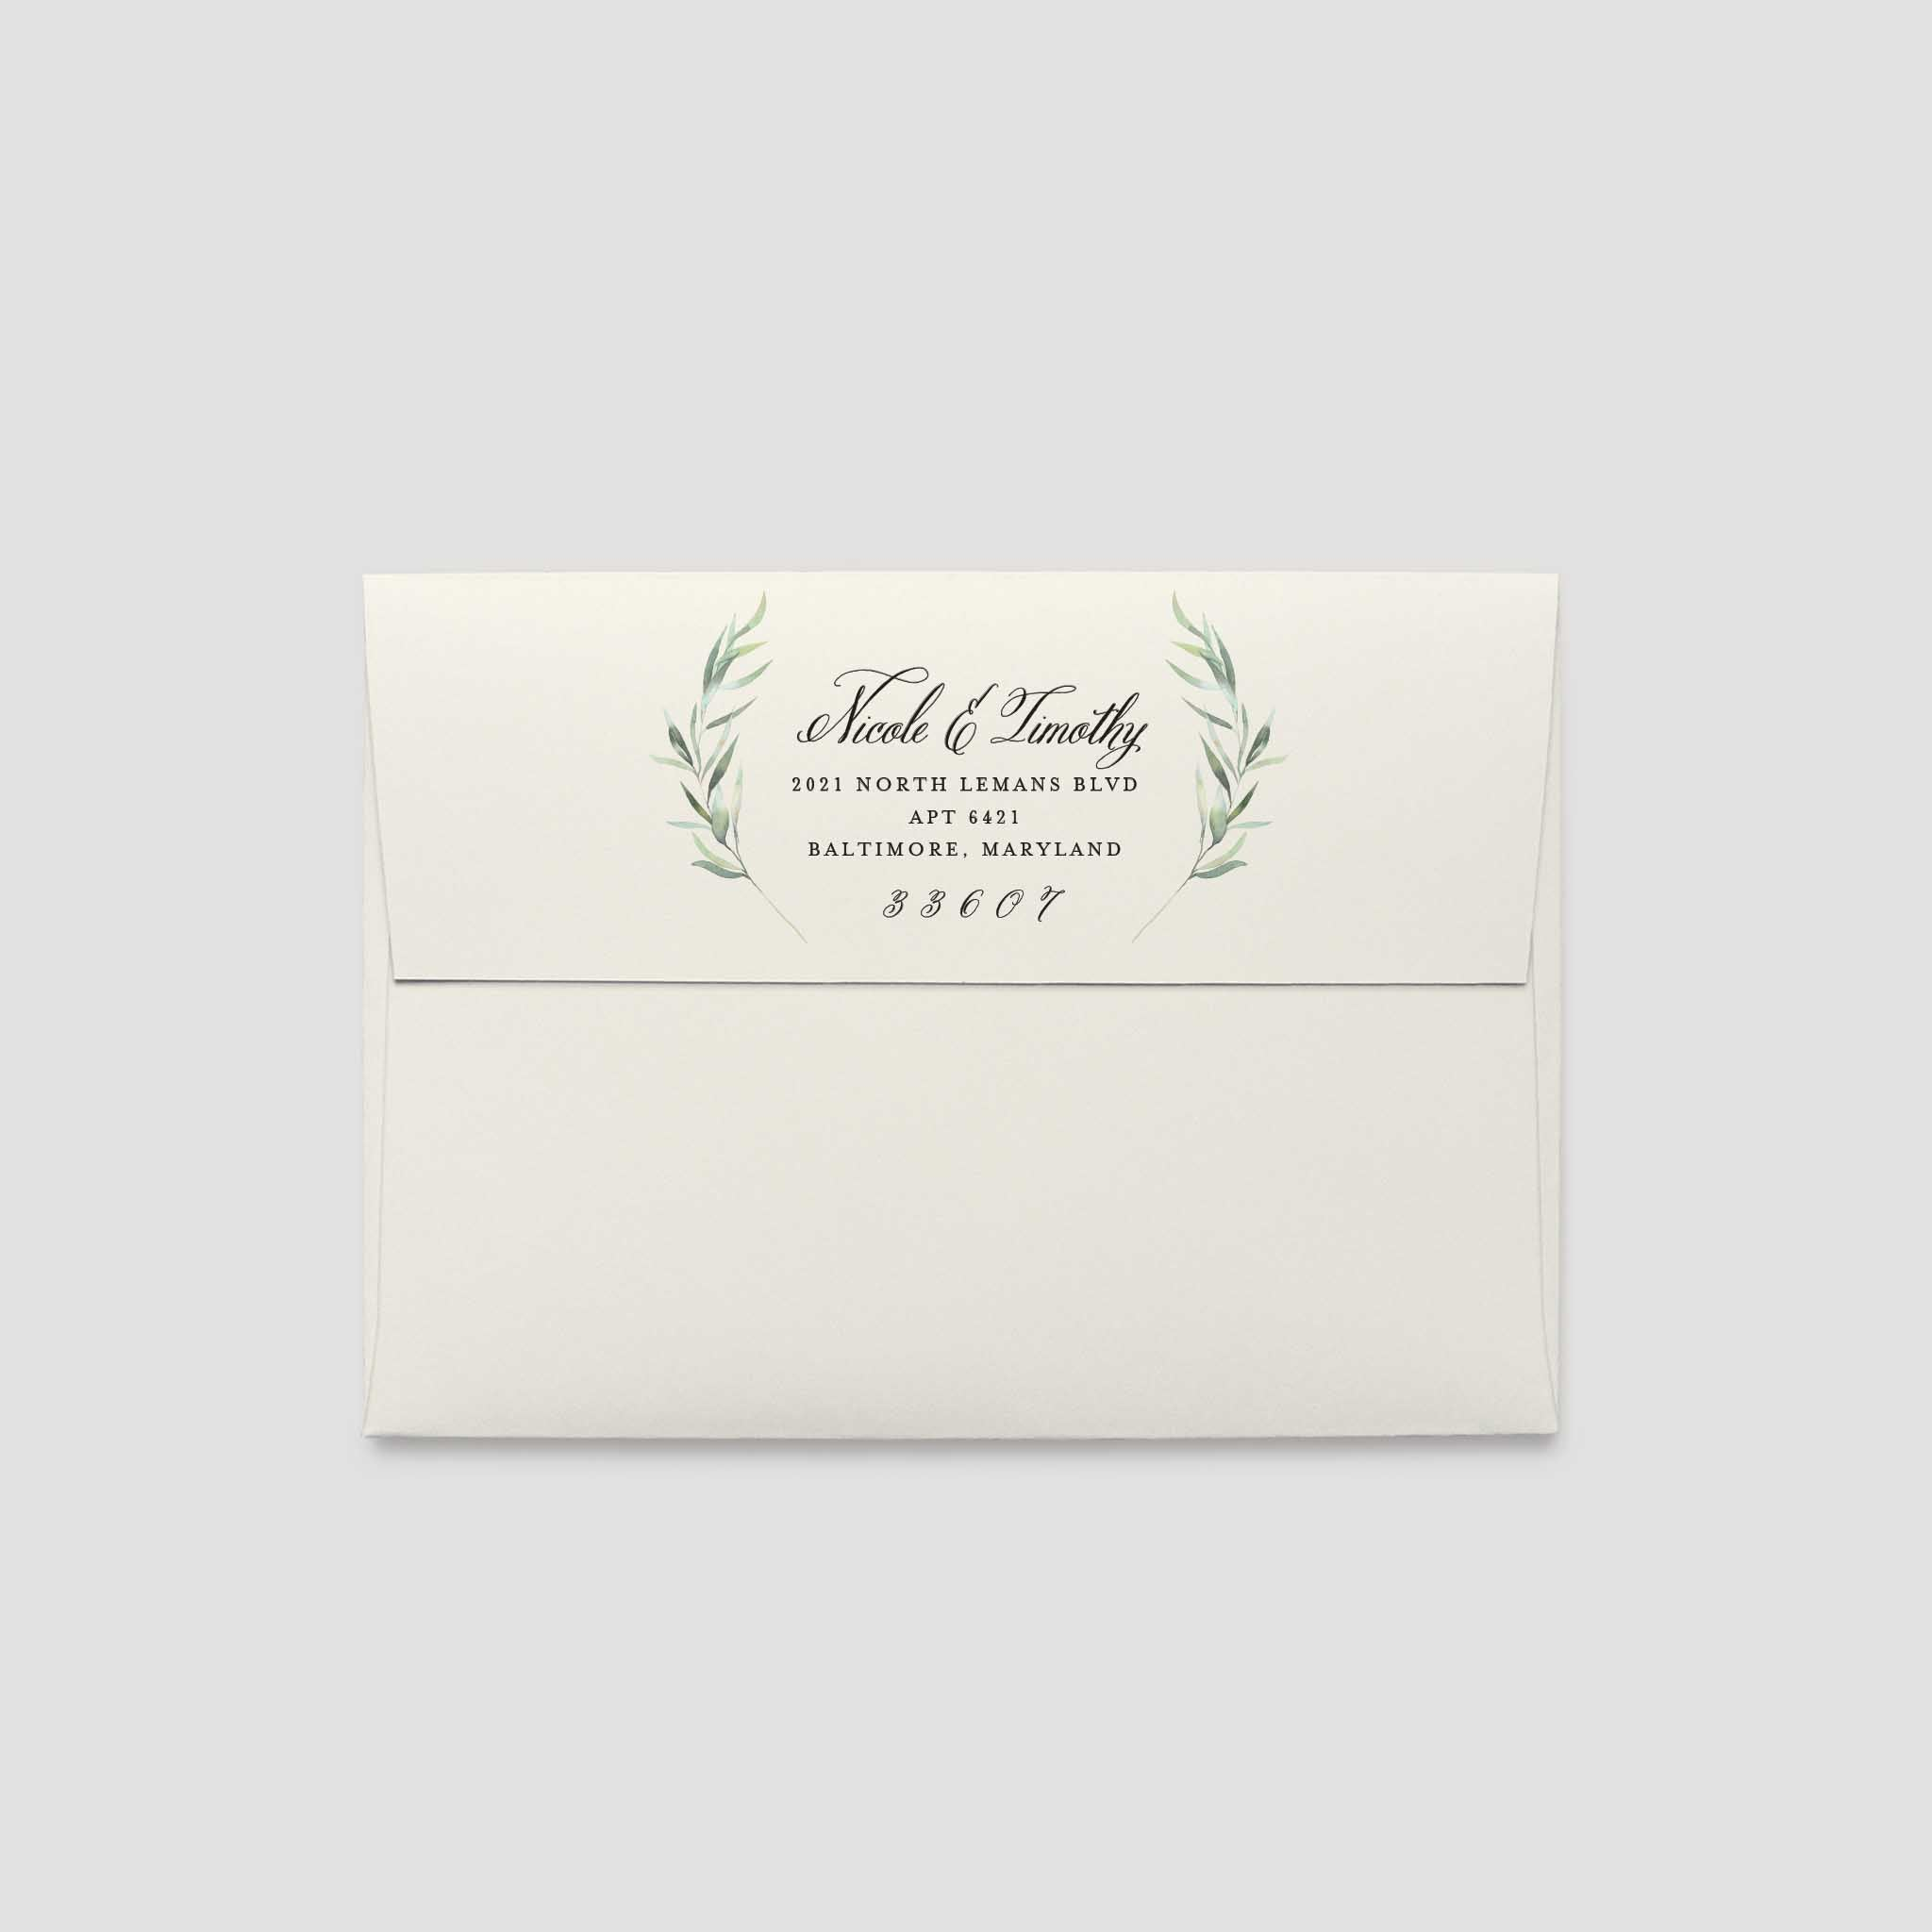 6x9 Wedding Invitation Envelopes: Eucalyptus Wedding Invitation